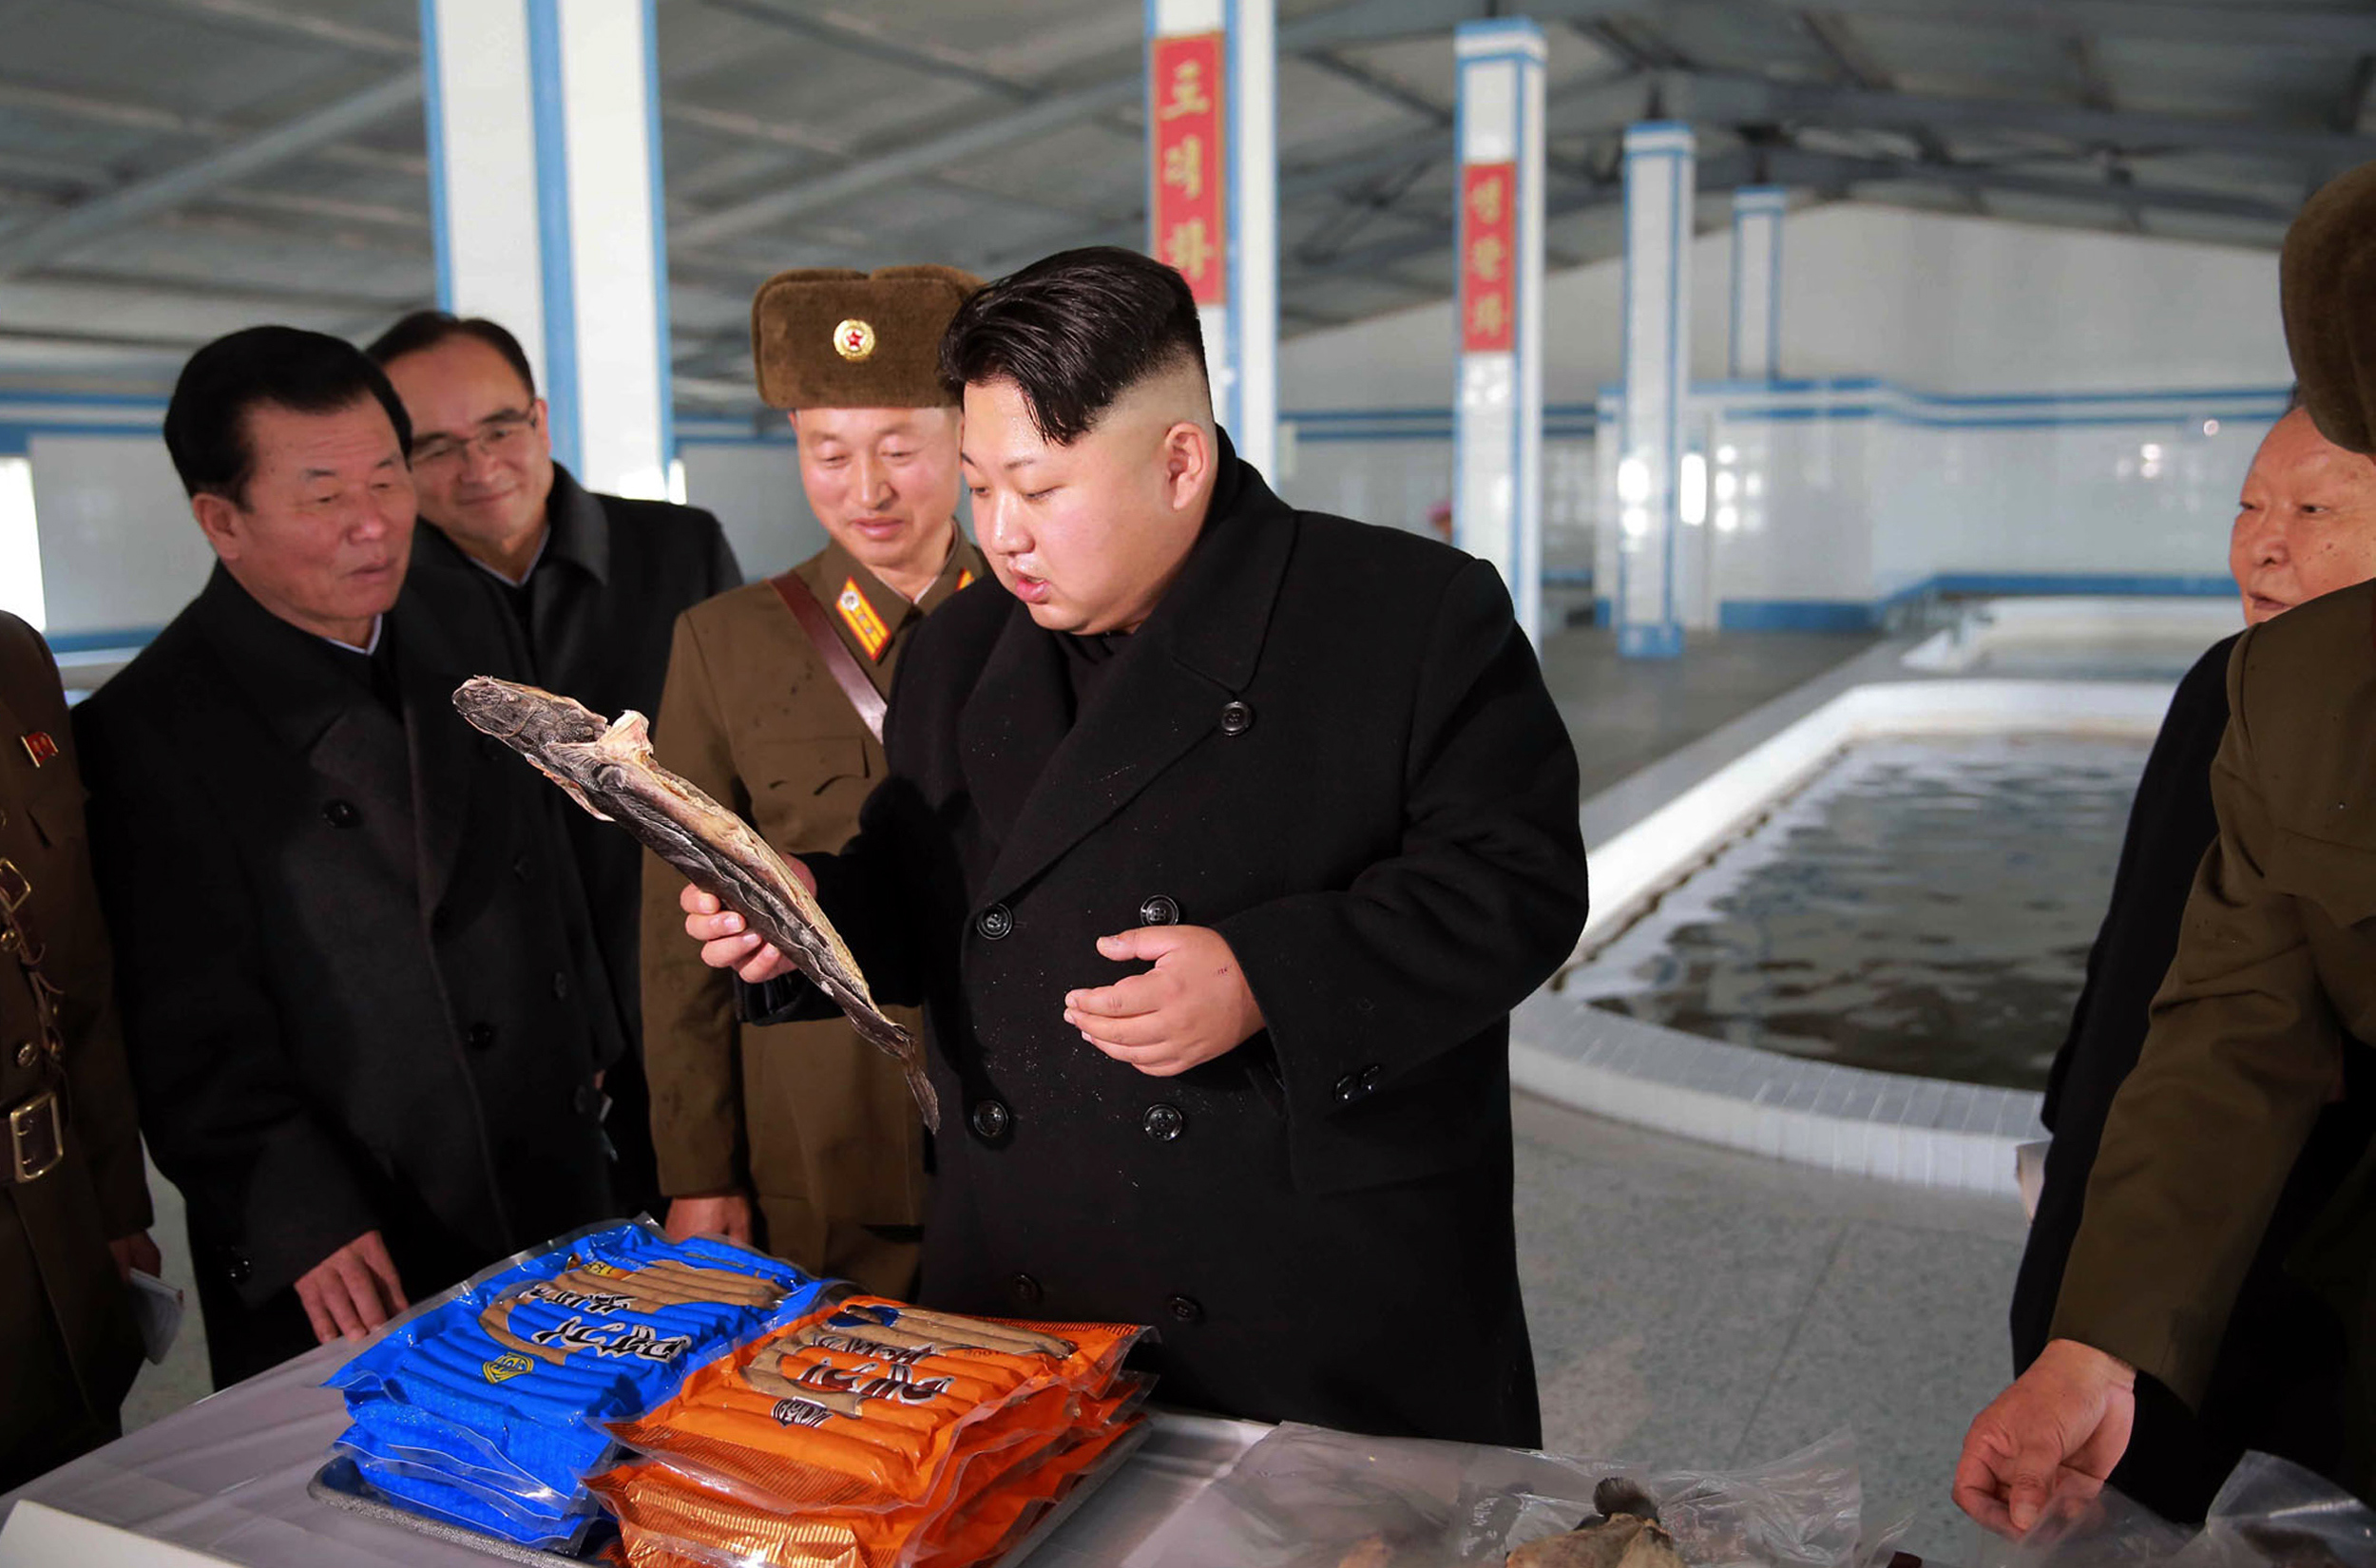 North Korea's 'Hydrogen Bomb' Test Suggests Relations With China Unraveling